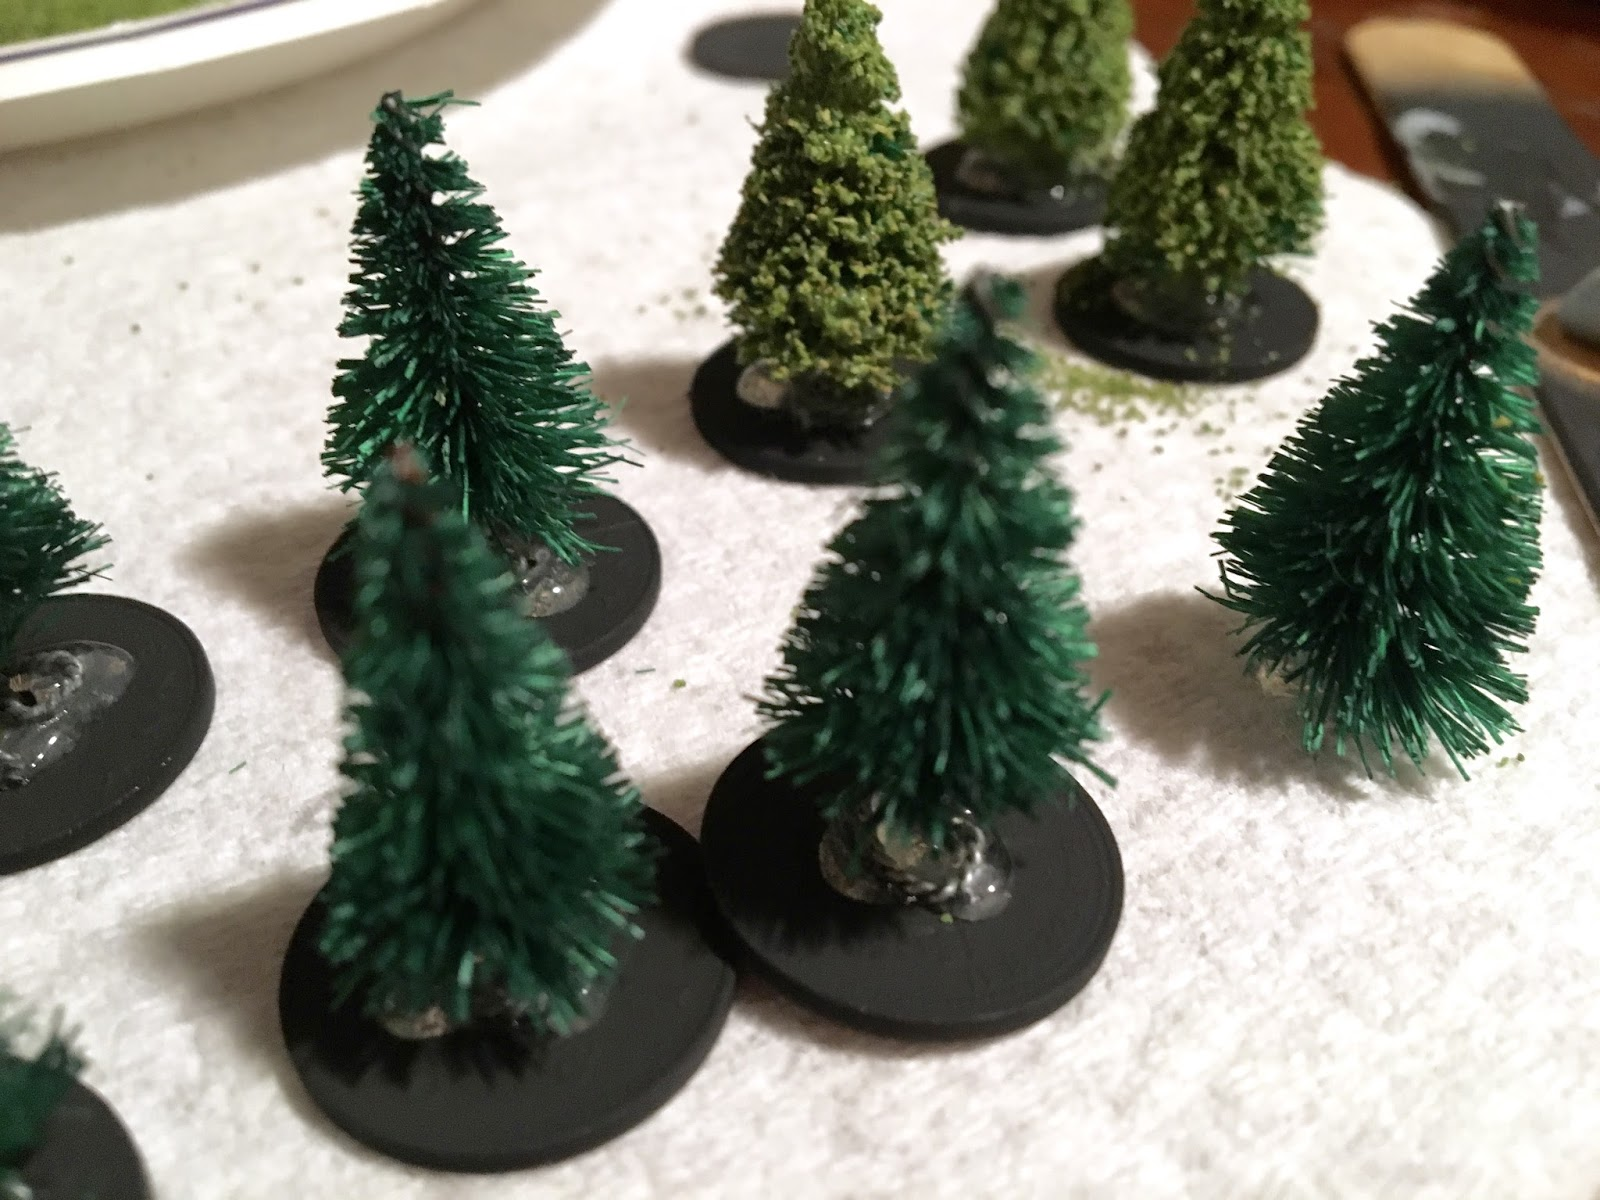 SquadPainter: Small Scale Wargaming Trees on a Budget